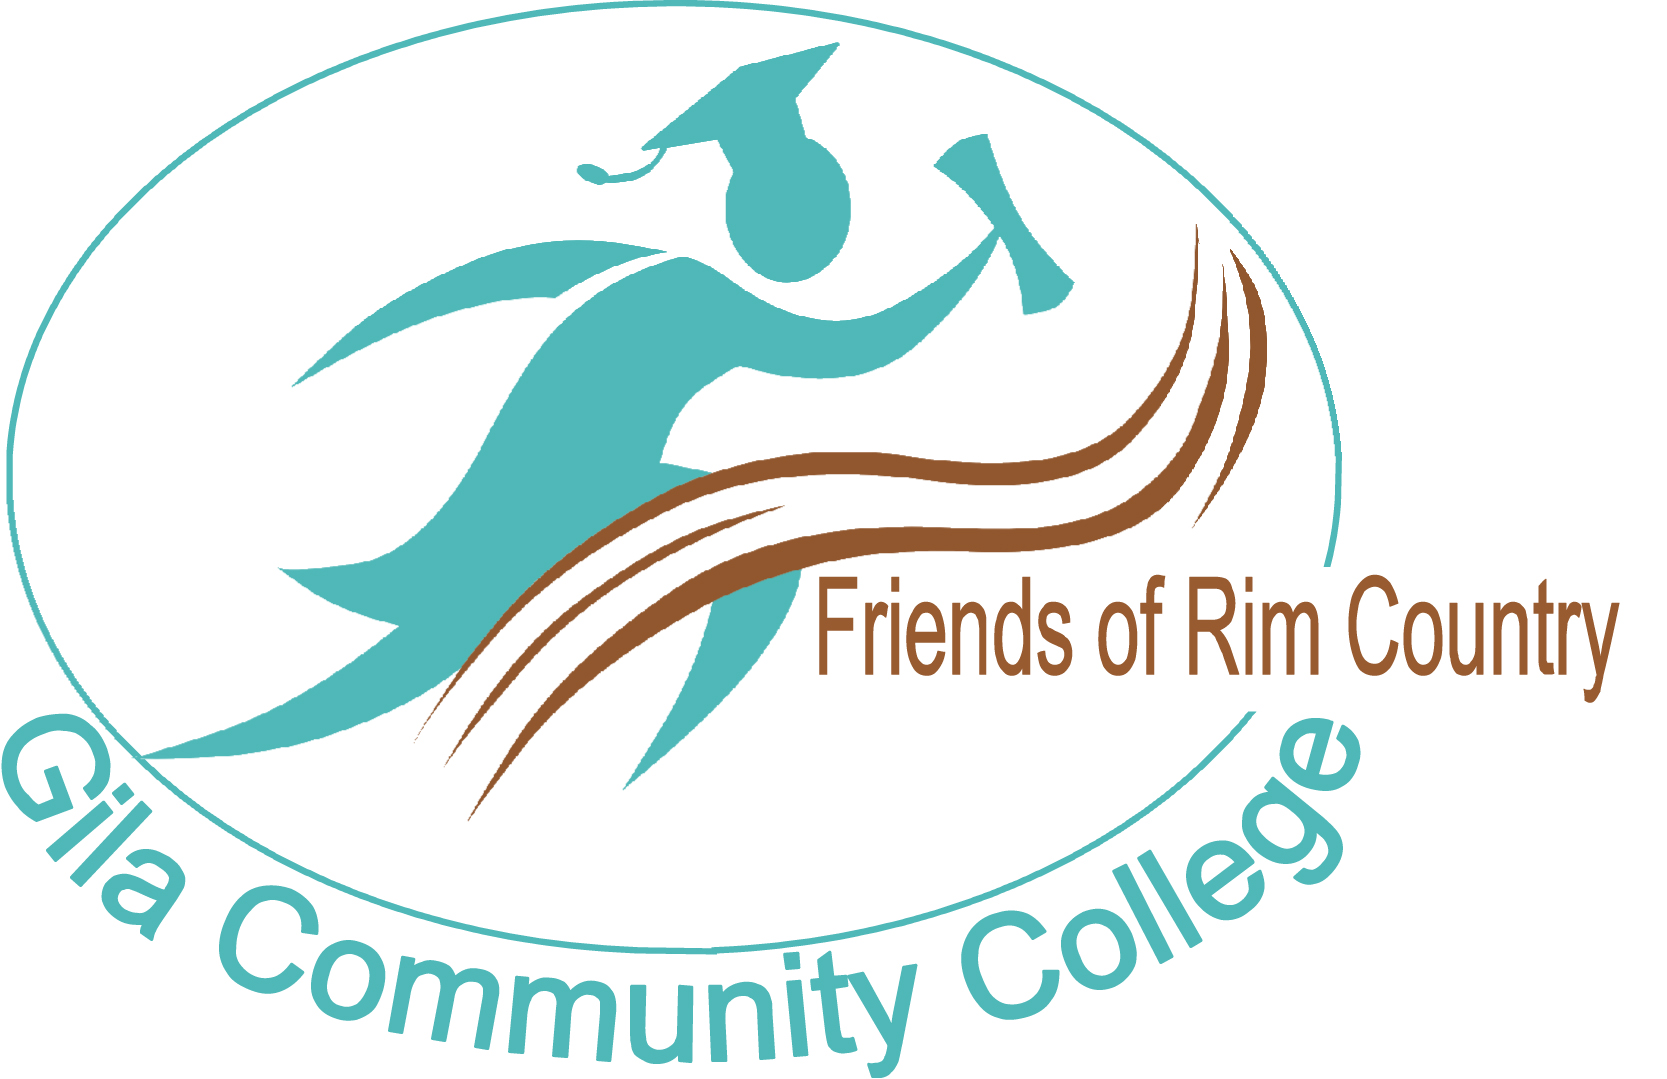 Friends of Rim Country Gila Community College